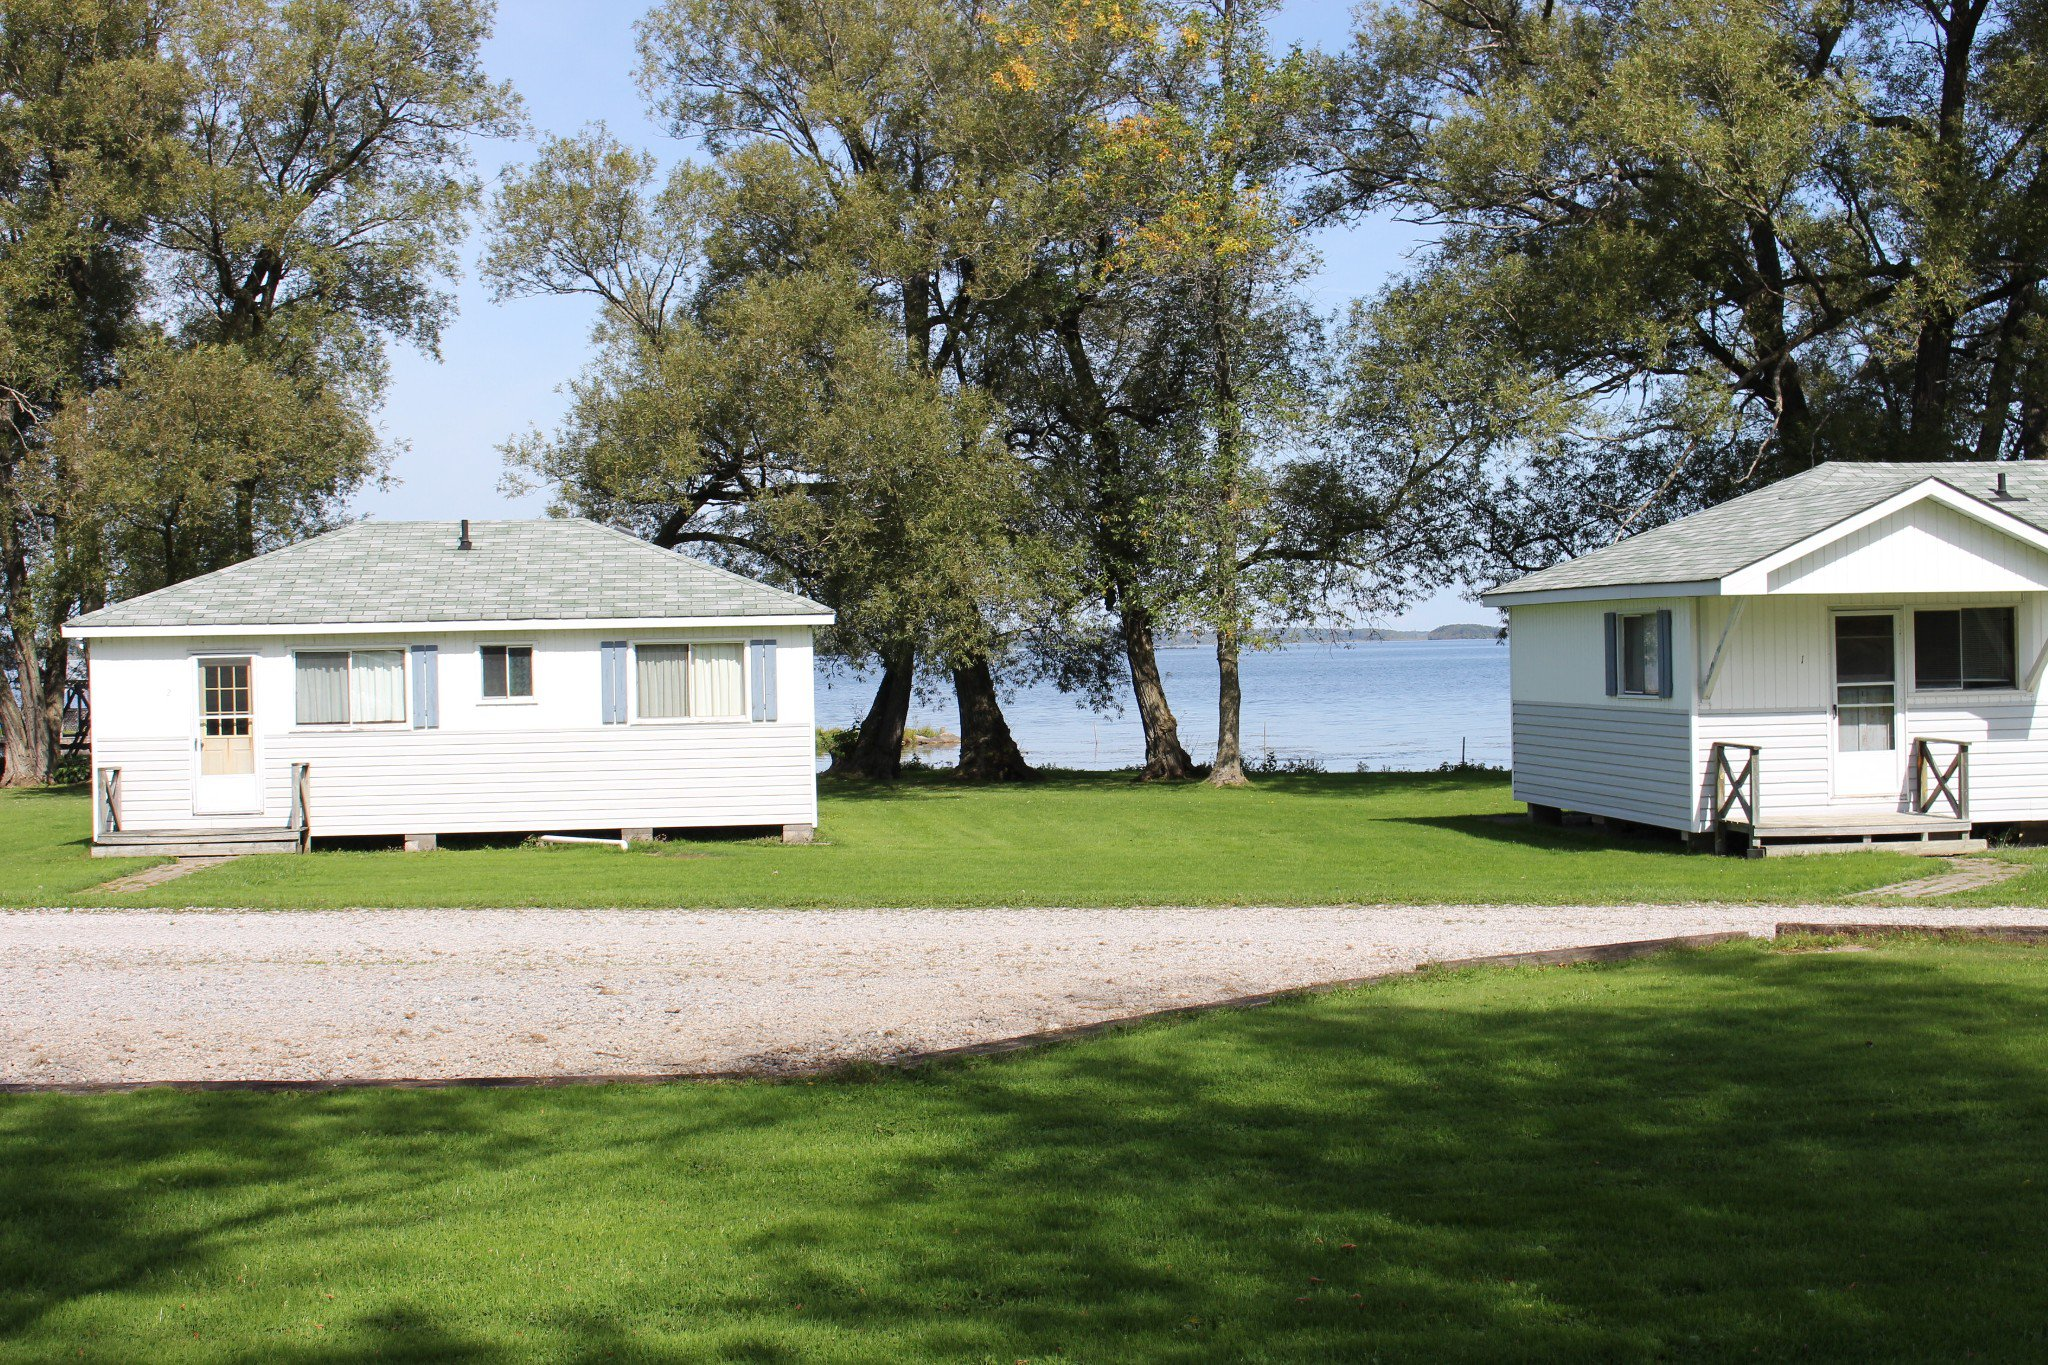 Photo 5: Photos: 6010 Rice Lake Scenic Drive in Harwood: Other for sale : MLS®# 223405